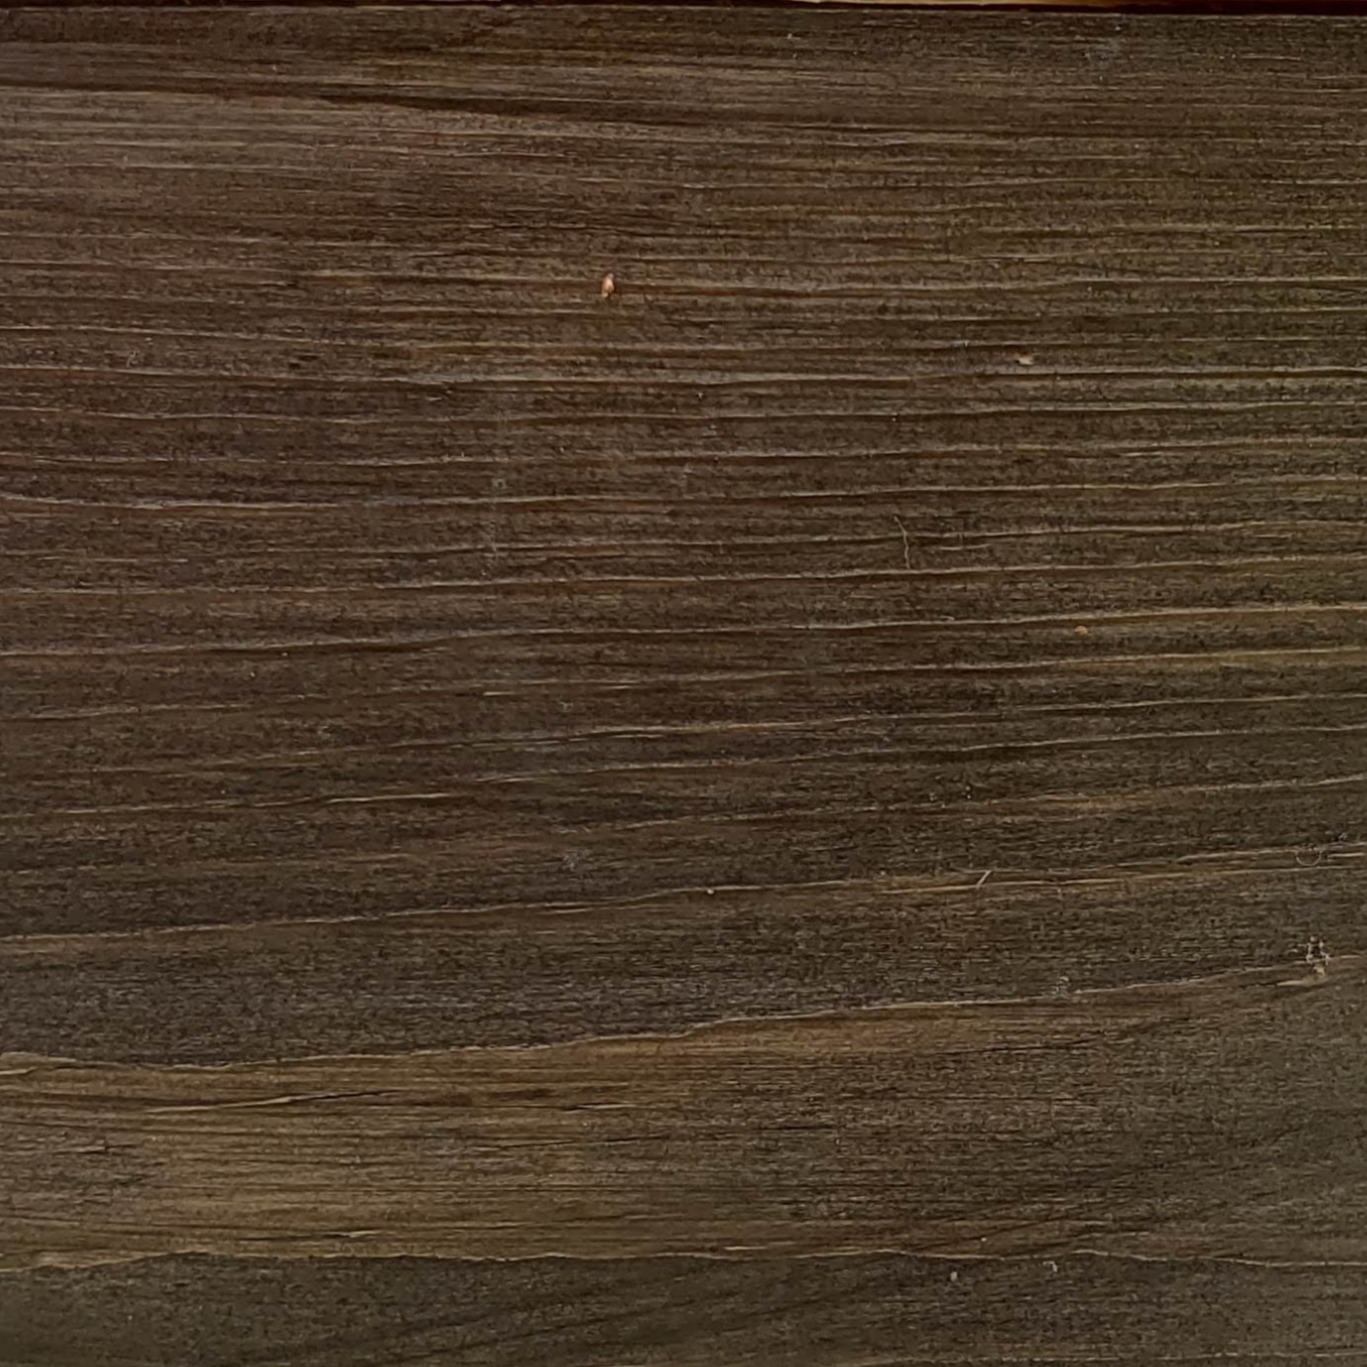 wood grain, stained, cloth rubbed